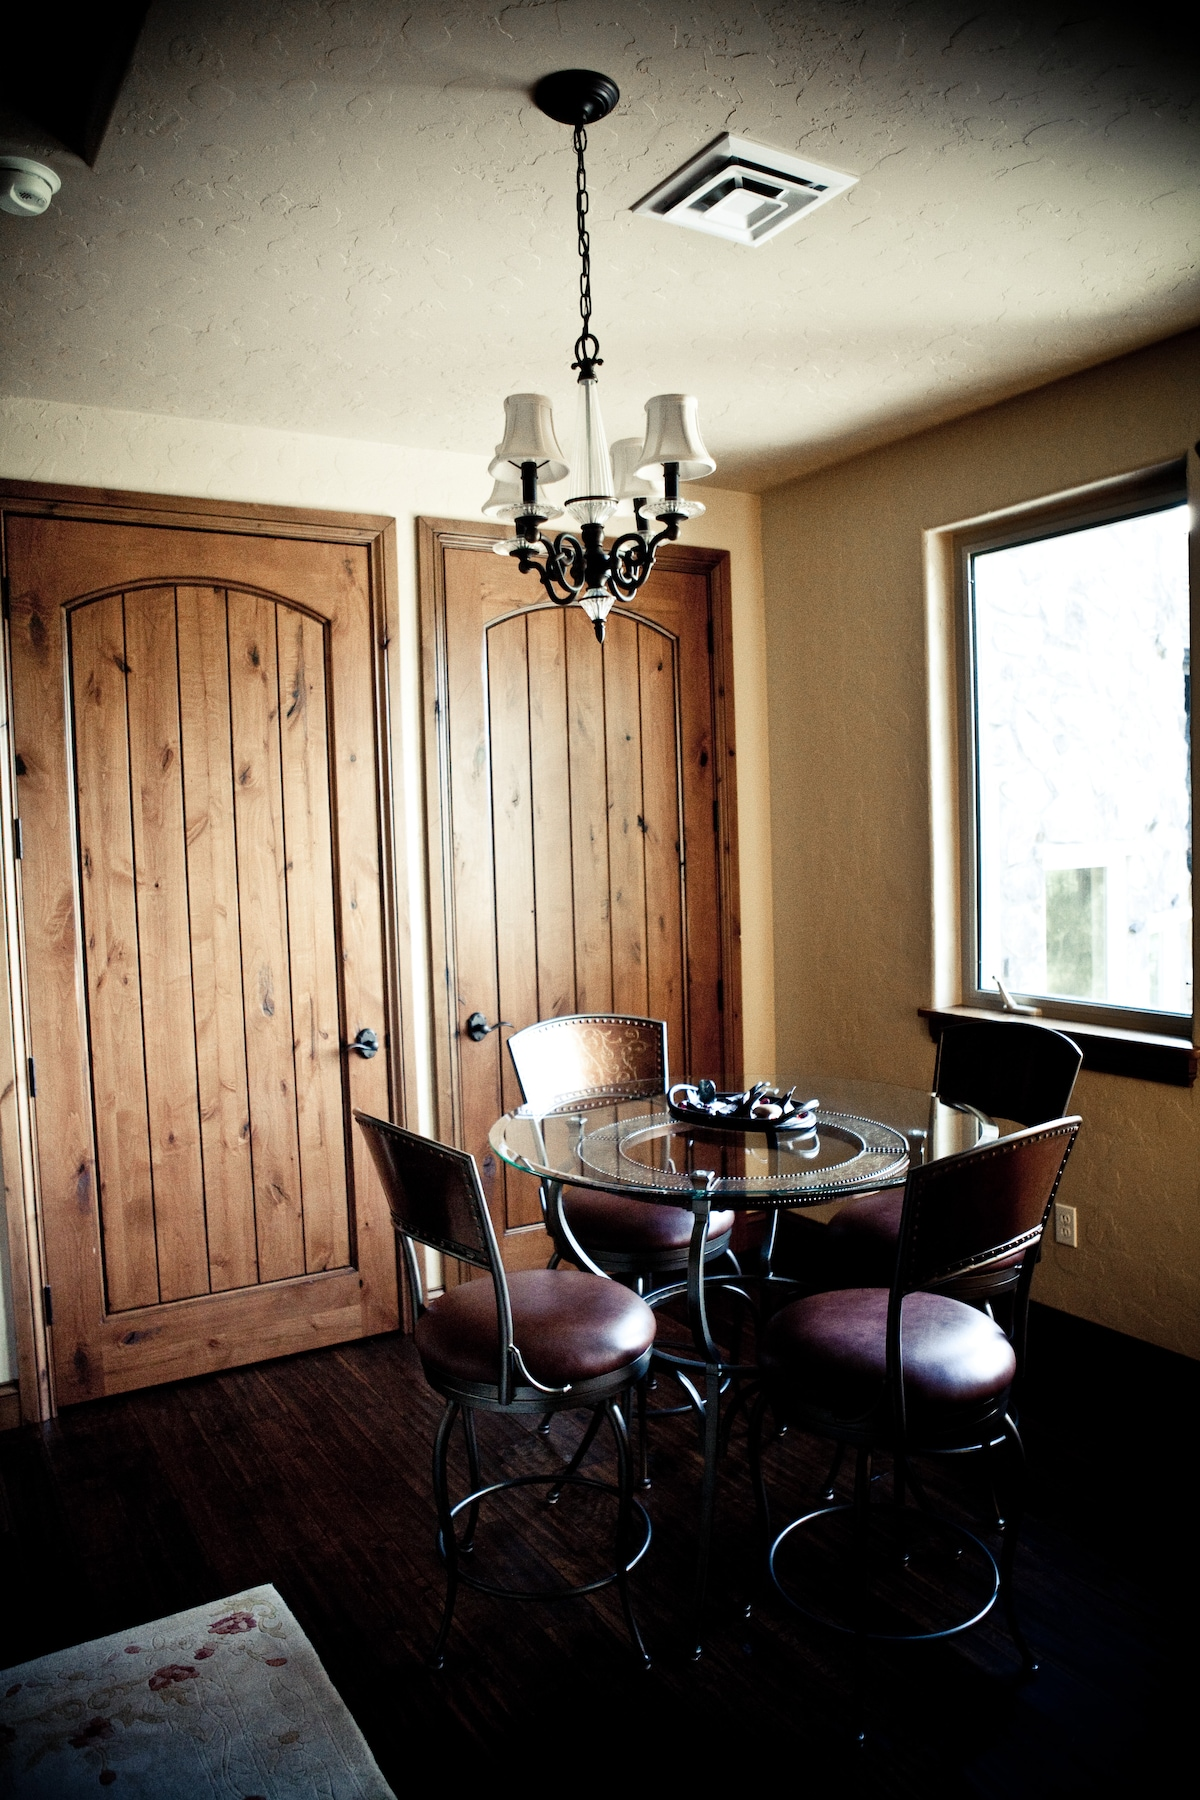 Antechamber with kitchenette in armoire. Enjoy dinner or games around the table- all overlooking Lake Mayfield, the Cowlitz & Tilton Rivers, Koi Pond and watermusic below from the entry fountain! Breakfast is self-catered from a very well-stocked pantry a